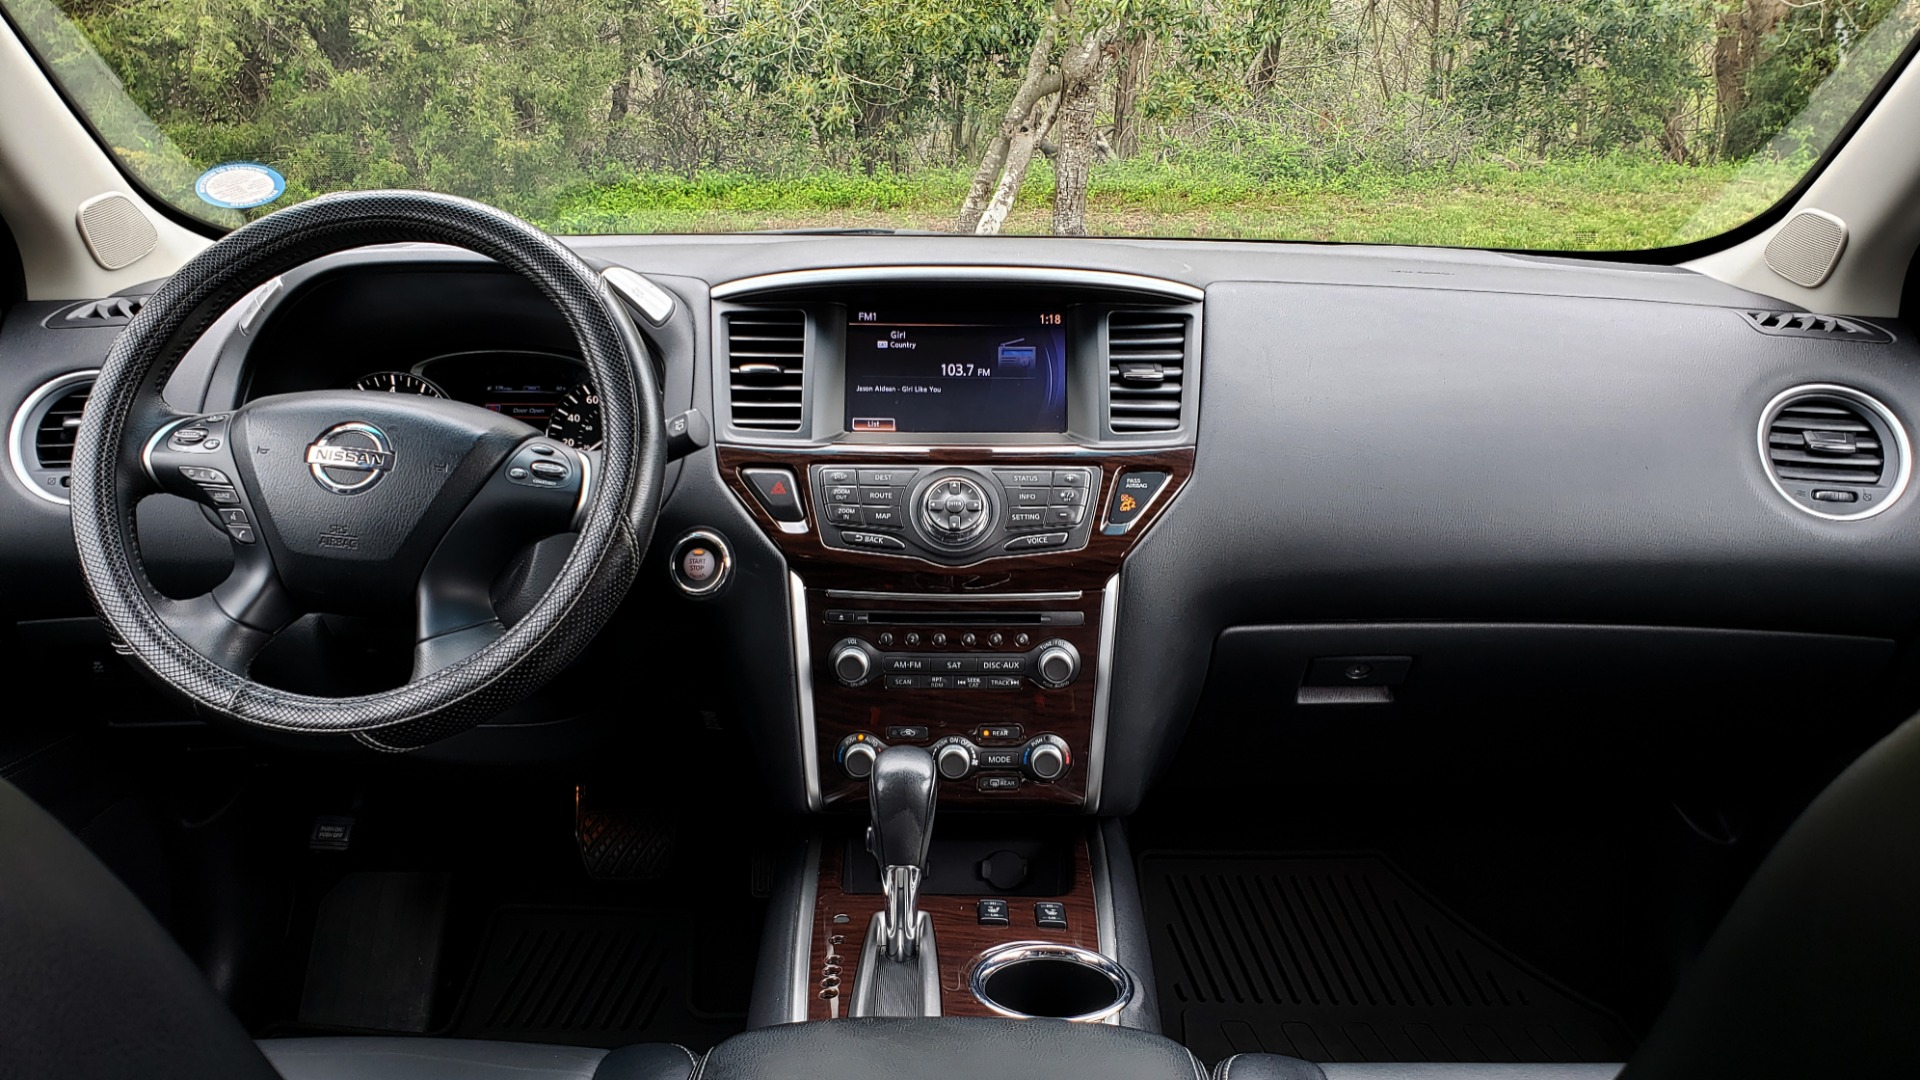 Used 2014 Nissan PATHFINDER SL TECH PKG / 4WD / NAV / SUNROOF / REARVIEW / 3-ROW for sale Sold at Formula Imports in Charlotte NC 28227 85